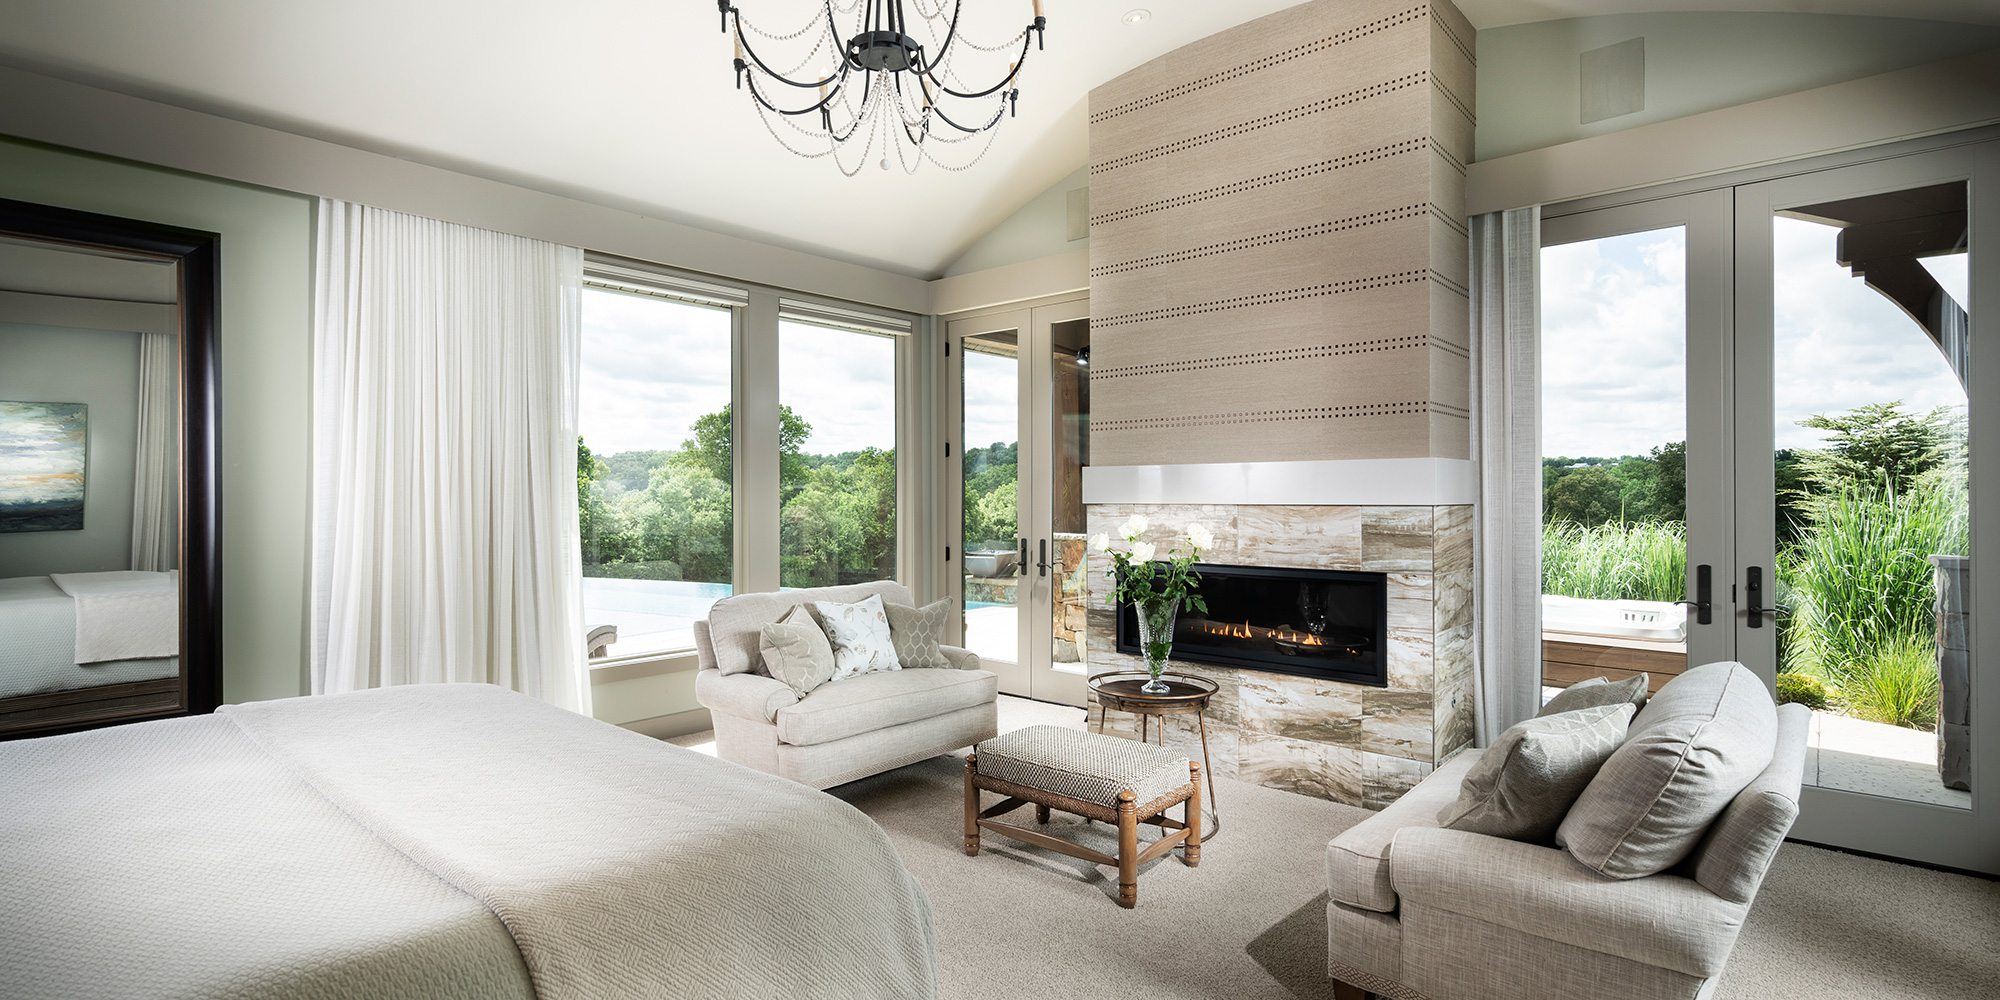 417 Home Design Awards 2020 Winner of Best Bedroom by DKW Designs Springfield MO